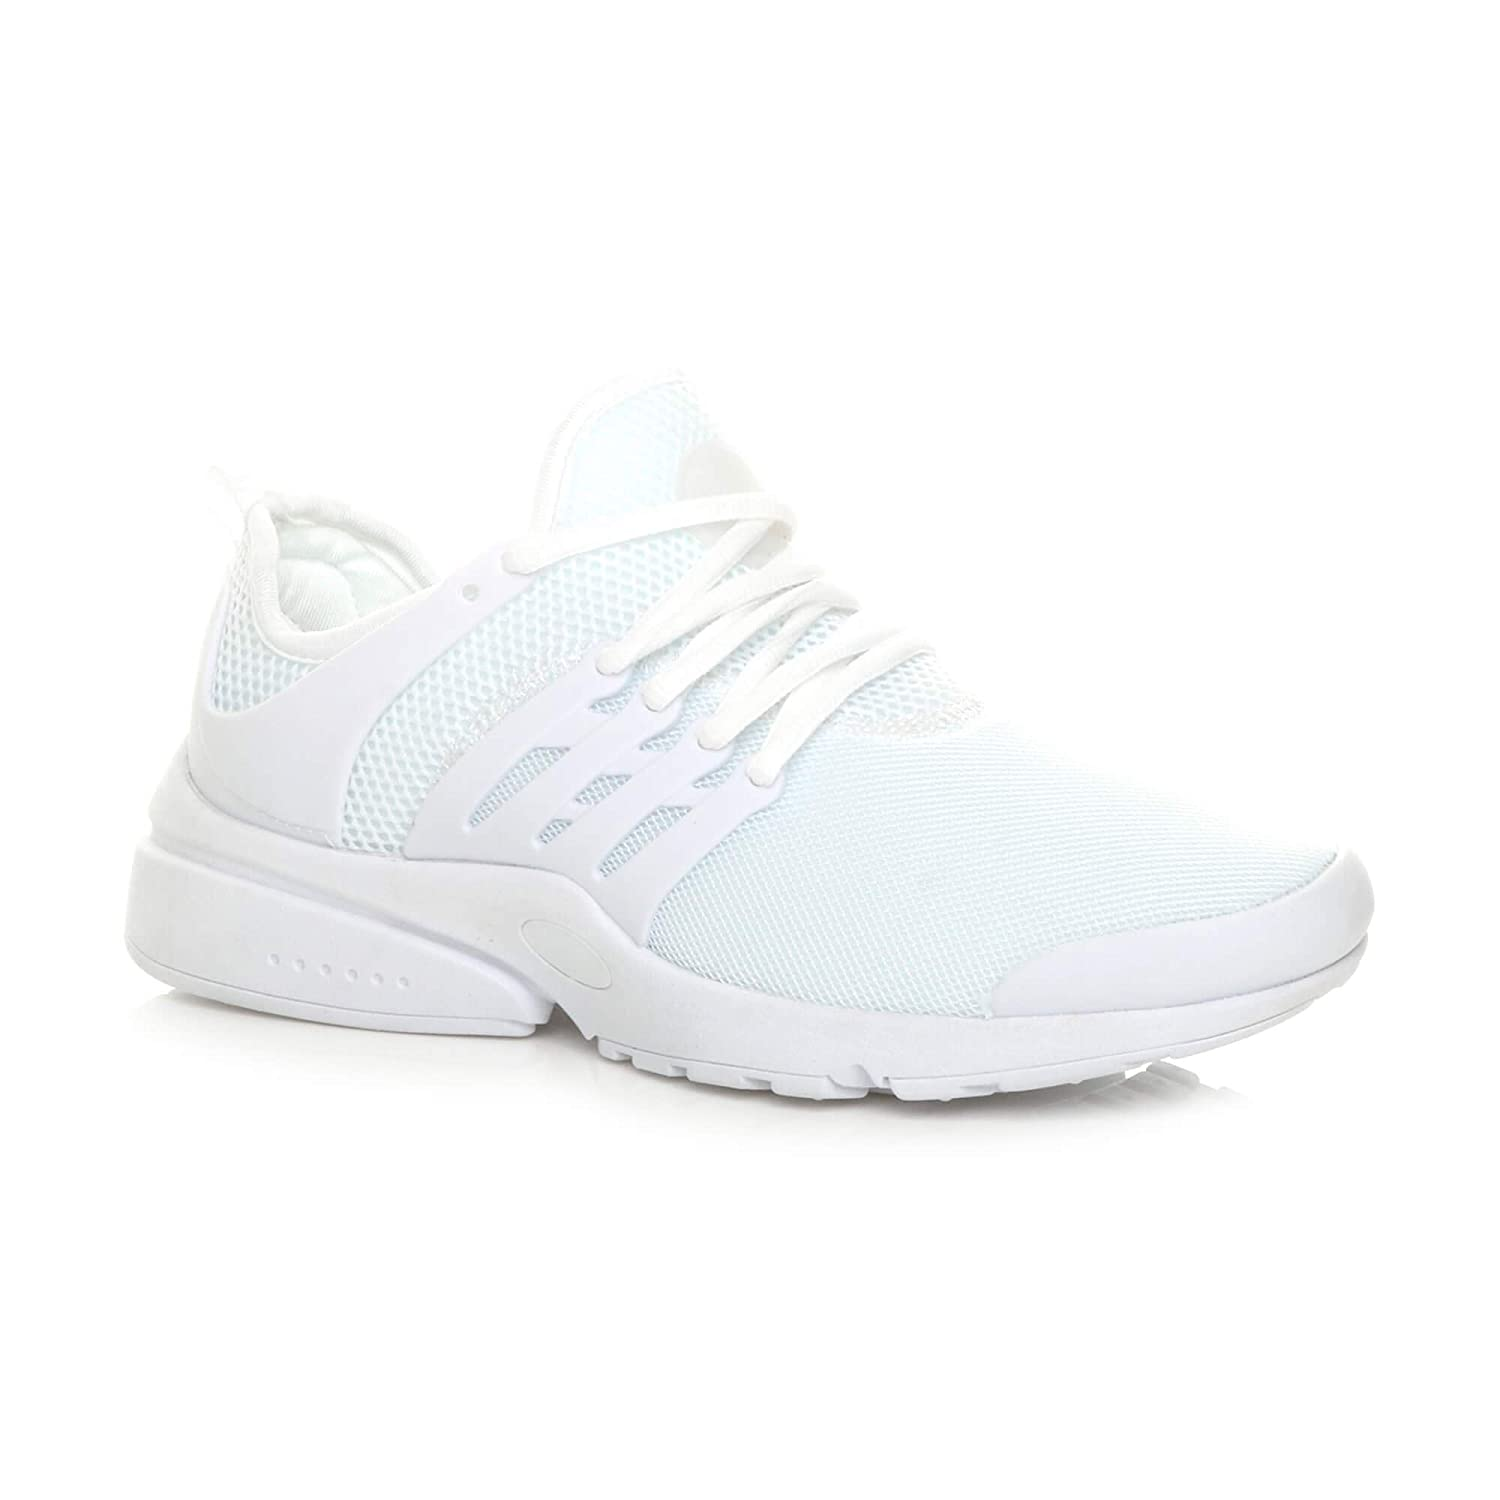 MEN/'S LACE UP SPORT GYM FITNESS RUNNING FLEXIBLE TRAINERS CASUAL SHOES UK SIZE